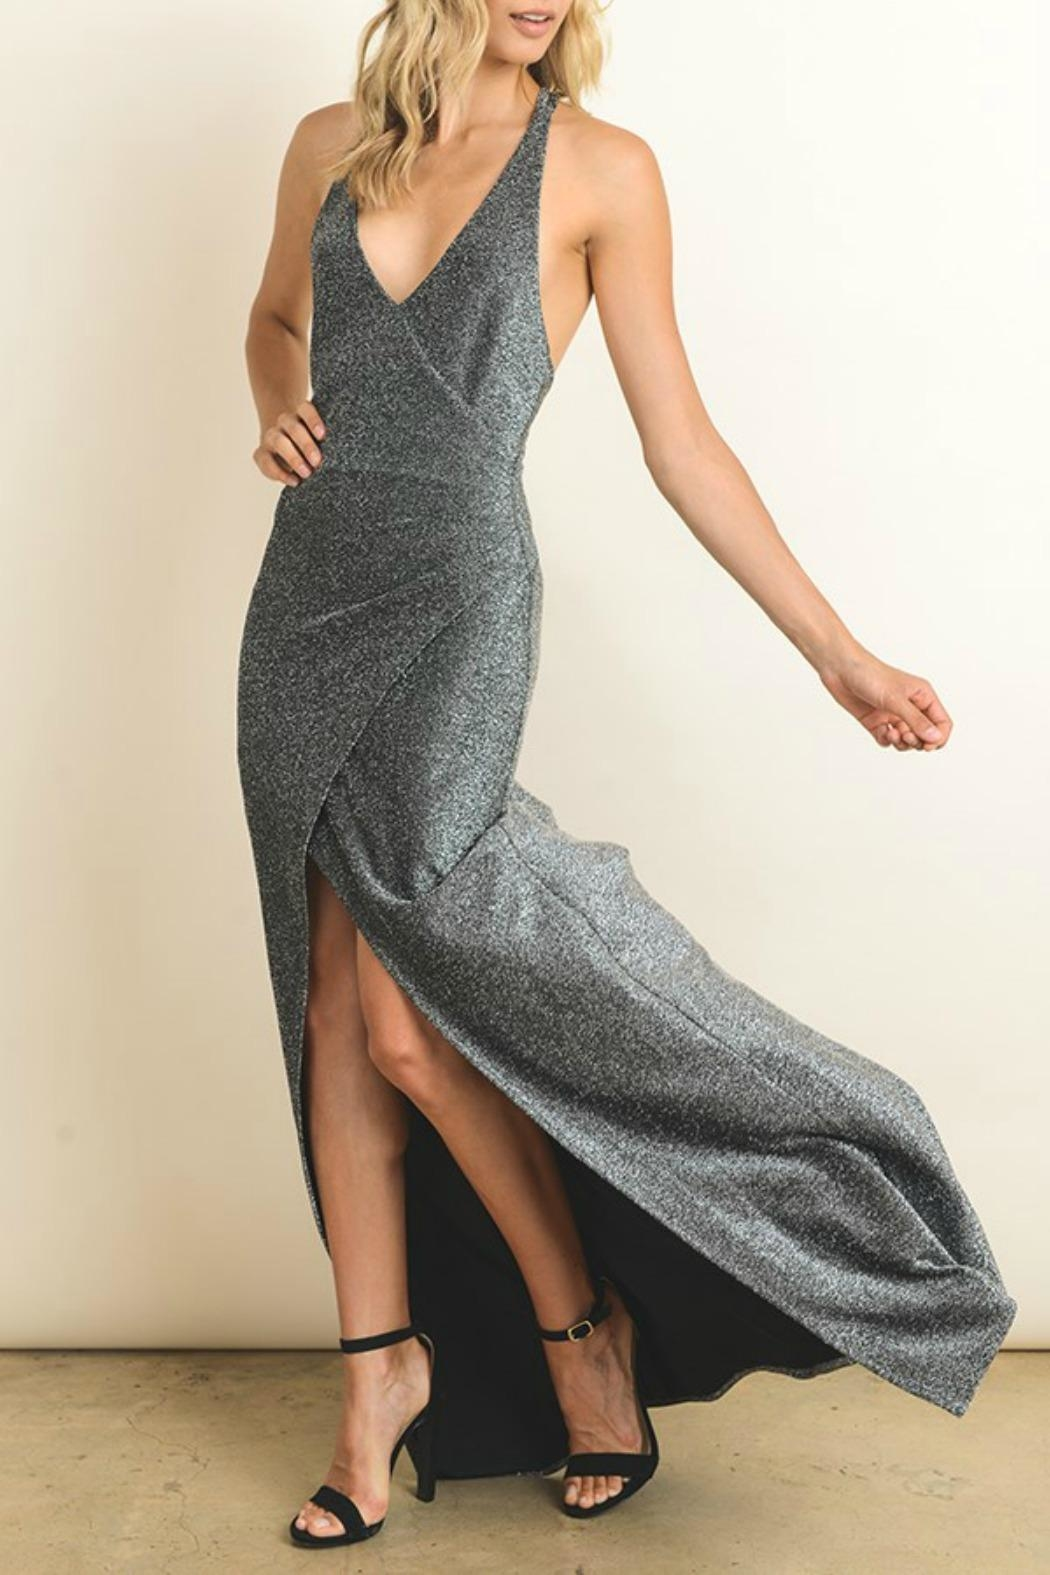 dress forum Silver Maxi Dress from Kansas by Eccentricity — Shoptiques f063fef841